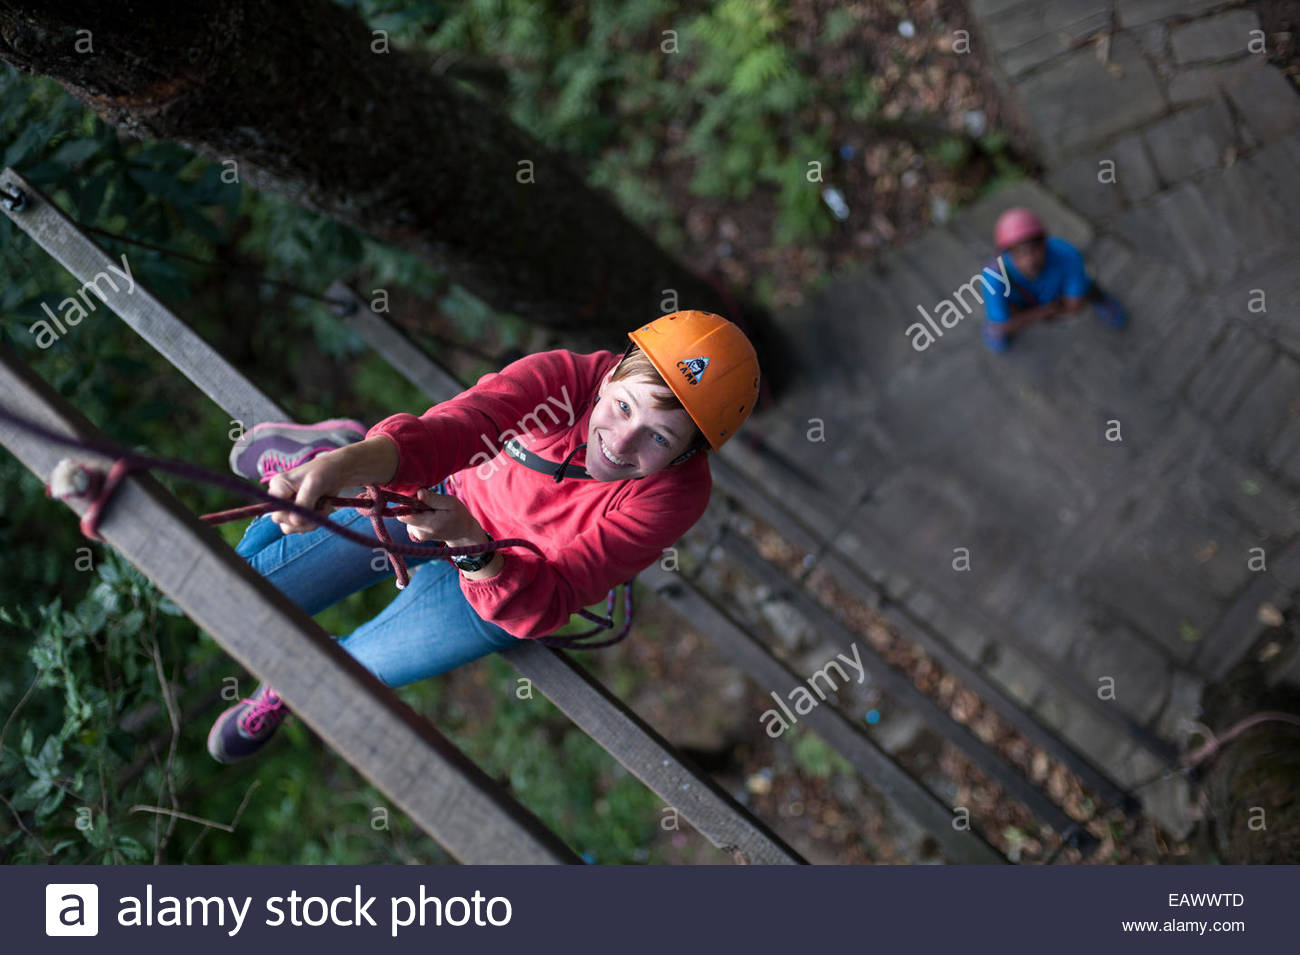 A woman climbs up a giant ladder on a high ropes activity course at The Last Resort in Nepal - Stock Image